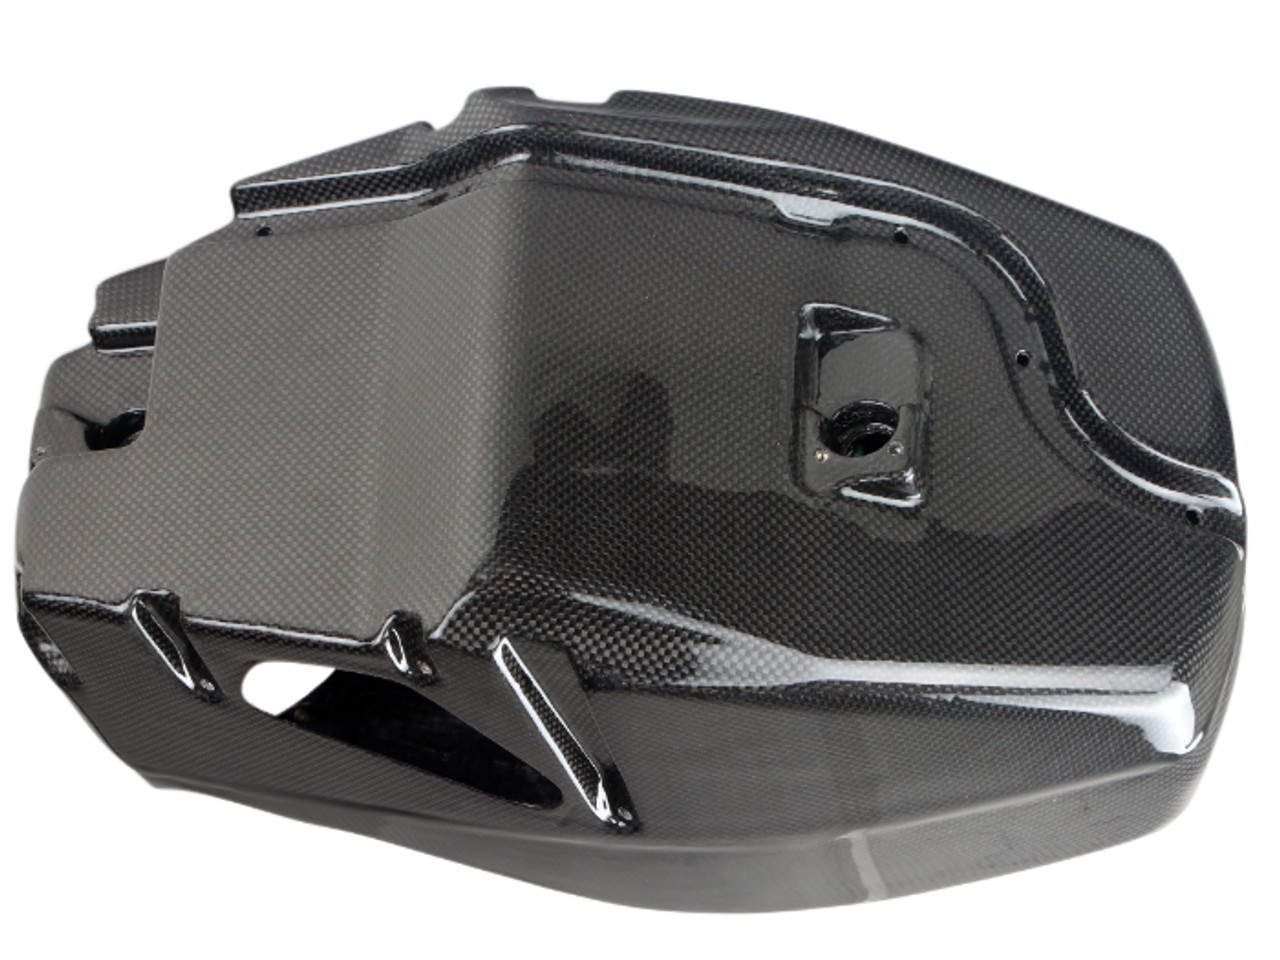 Air Box in Glossy Plain Weave Carbon Fiber for Ducati Streetfighter